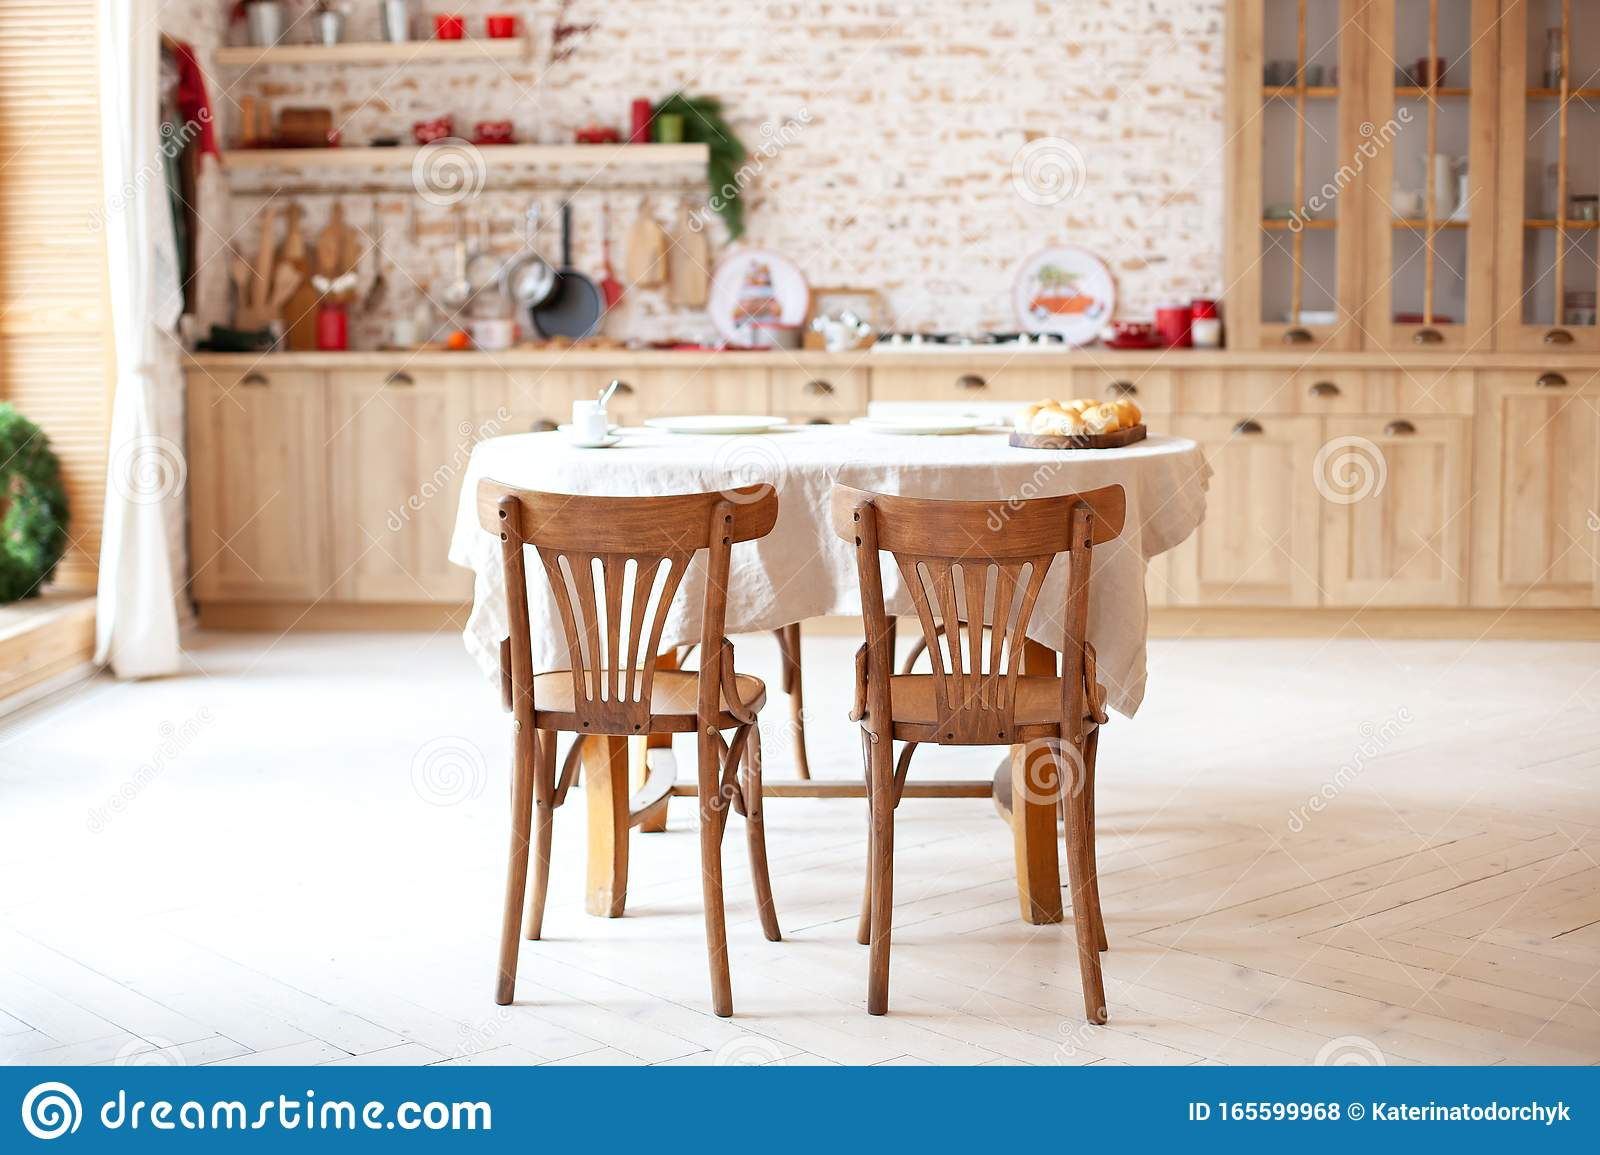 Dining Room In A Cottage Style Brown Kitchen With A Round Rustic Dining Table With Chairs Outdoor Dining Room Interior With Kitc Stock Photo Image Of Living Apartment 165599968